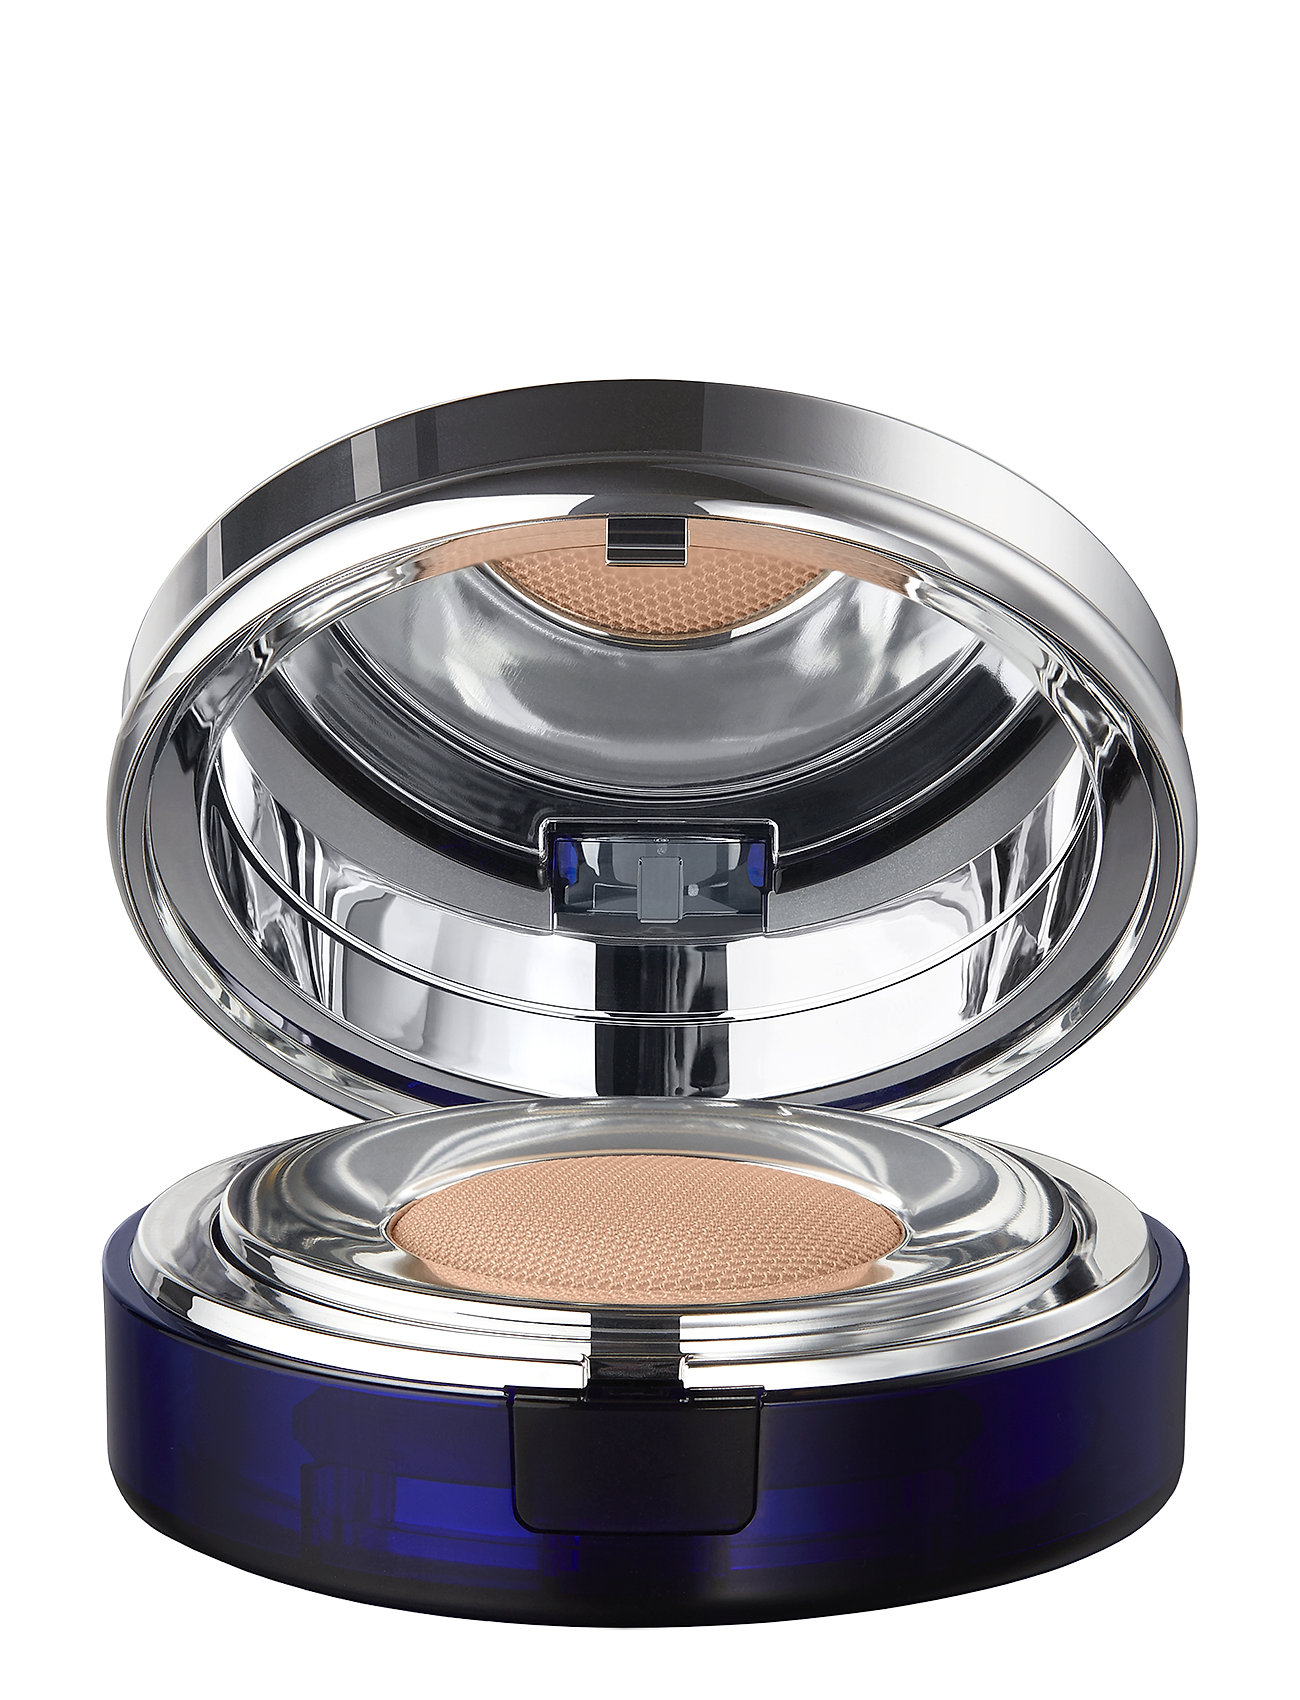 Image of Essence In Foundation Pure Ivory Compact Foundation Foundation Makeup La Prairie (3077233823)